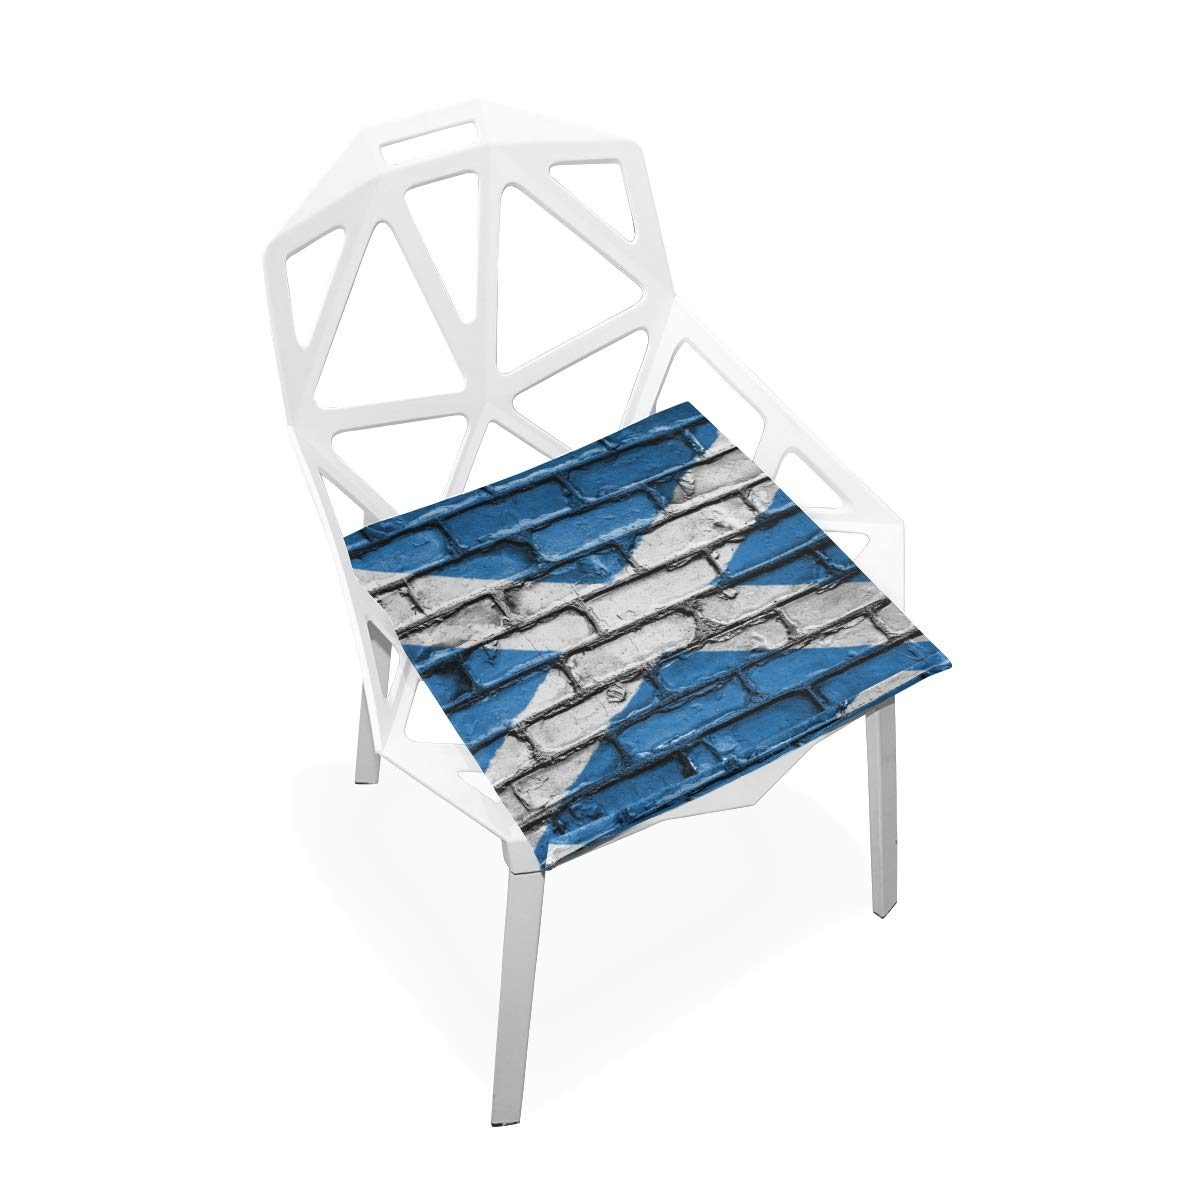 TSWEETHOME Comfort Memory Foam Square Chair Cushion Seat Cushion with Scotland Flag Brick Wall Chair Pads for Floors Dining Office Chairs